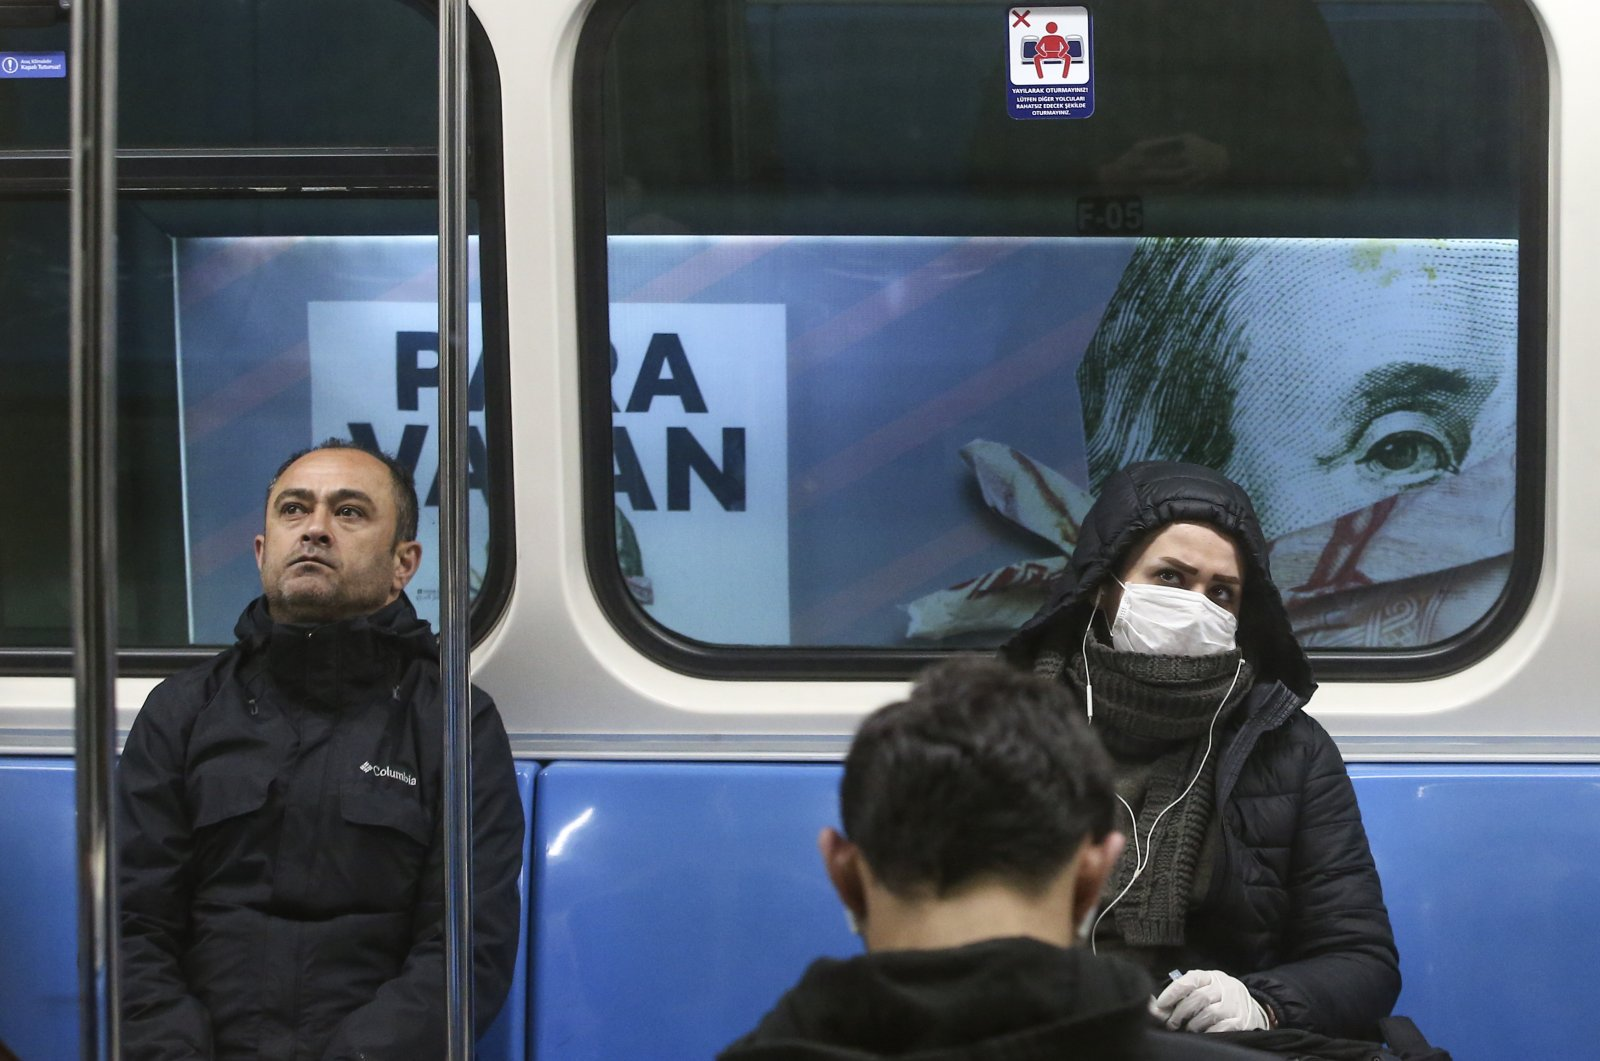 Commuters in an underground train, some wearing masks, are driven past a billboard of a book advertisement featuring a picture of U.S. President Benjamin Franklin on the $100 bill, in Istanbul, Turkey, Wednesday, March 25, 2020. (AP Photo)